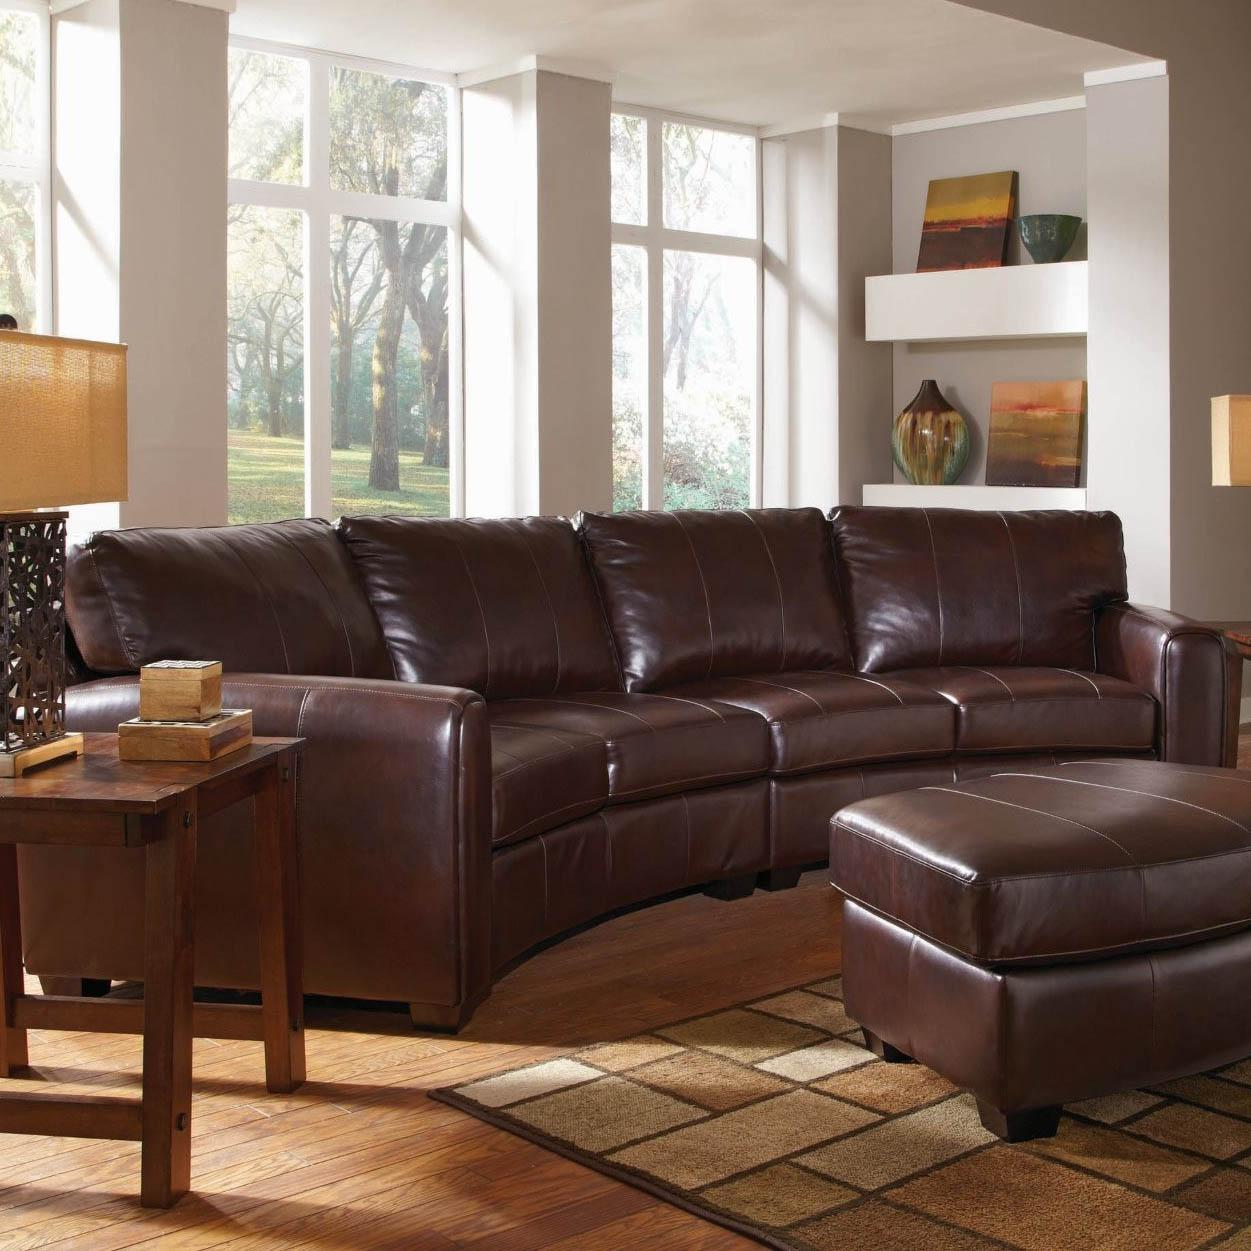 donate furniture alpharetta atlanta furniture specialist - Furniture Specialist